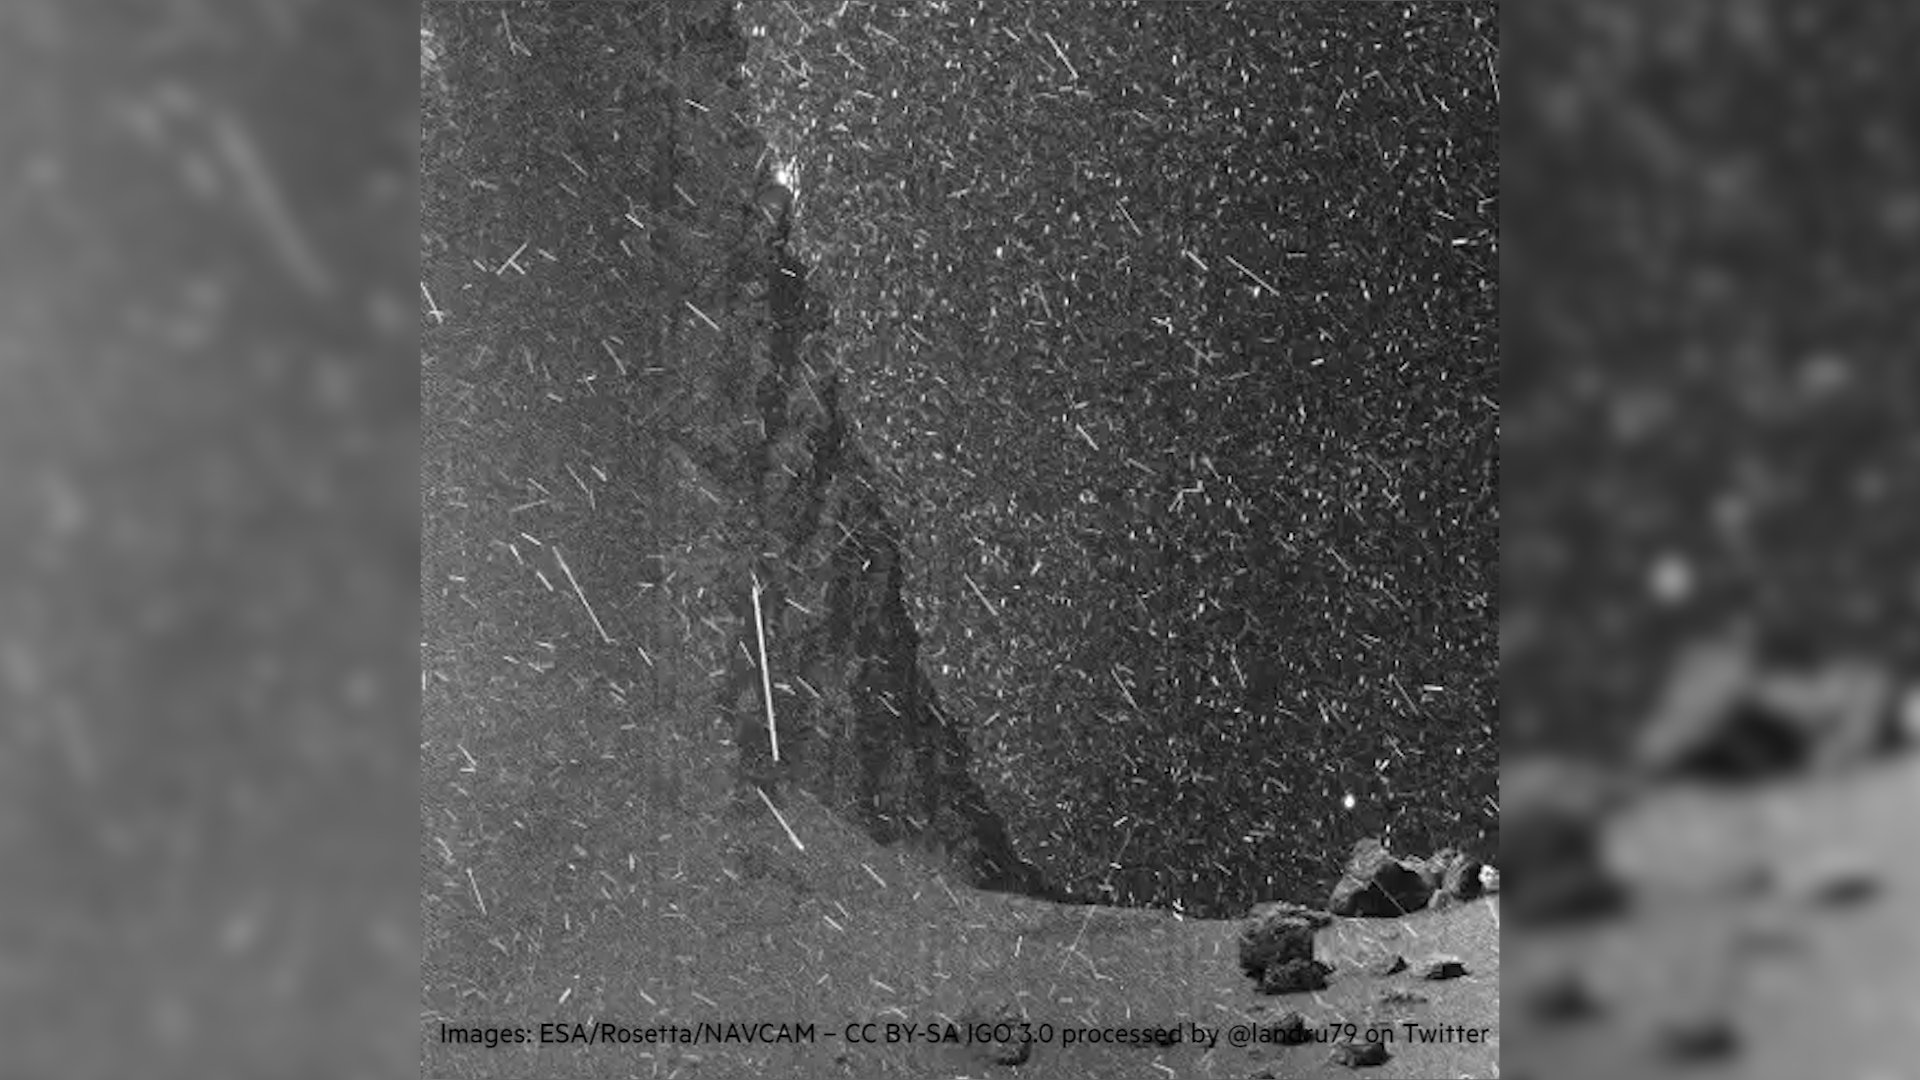 A rare view of the surface of a comet